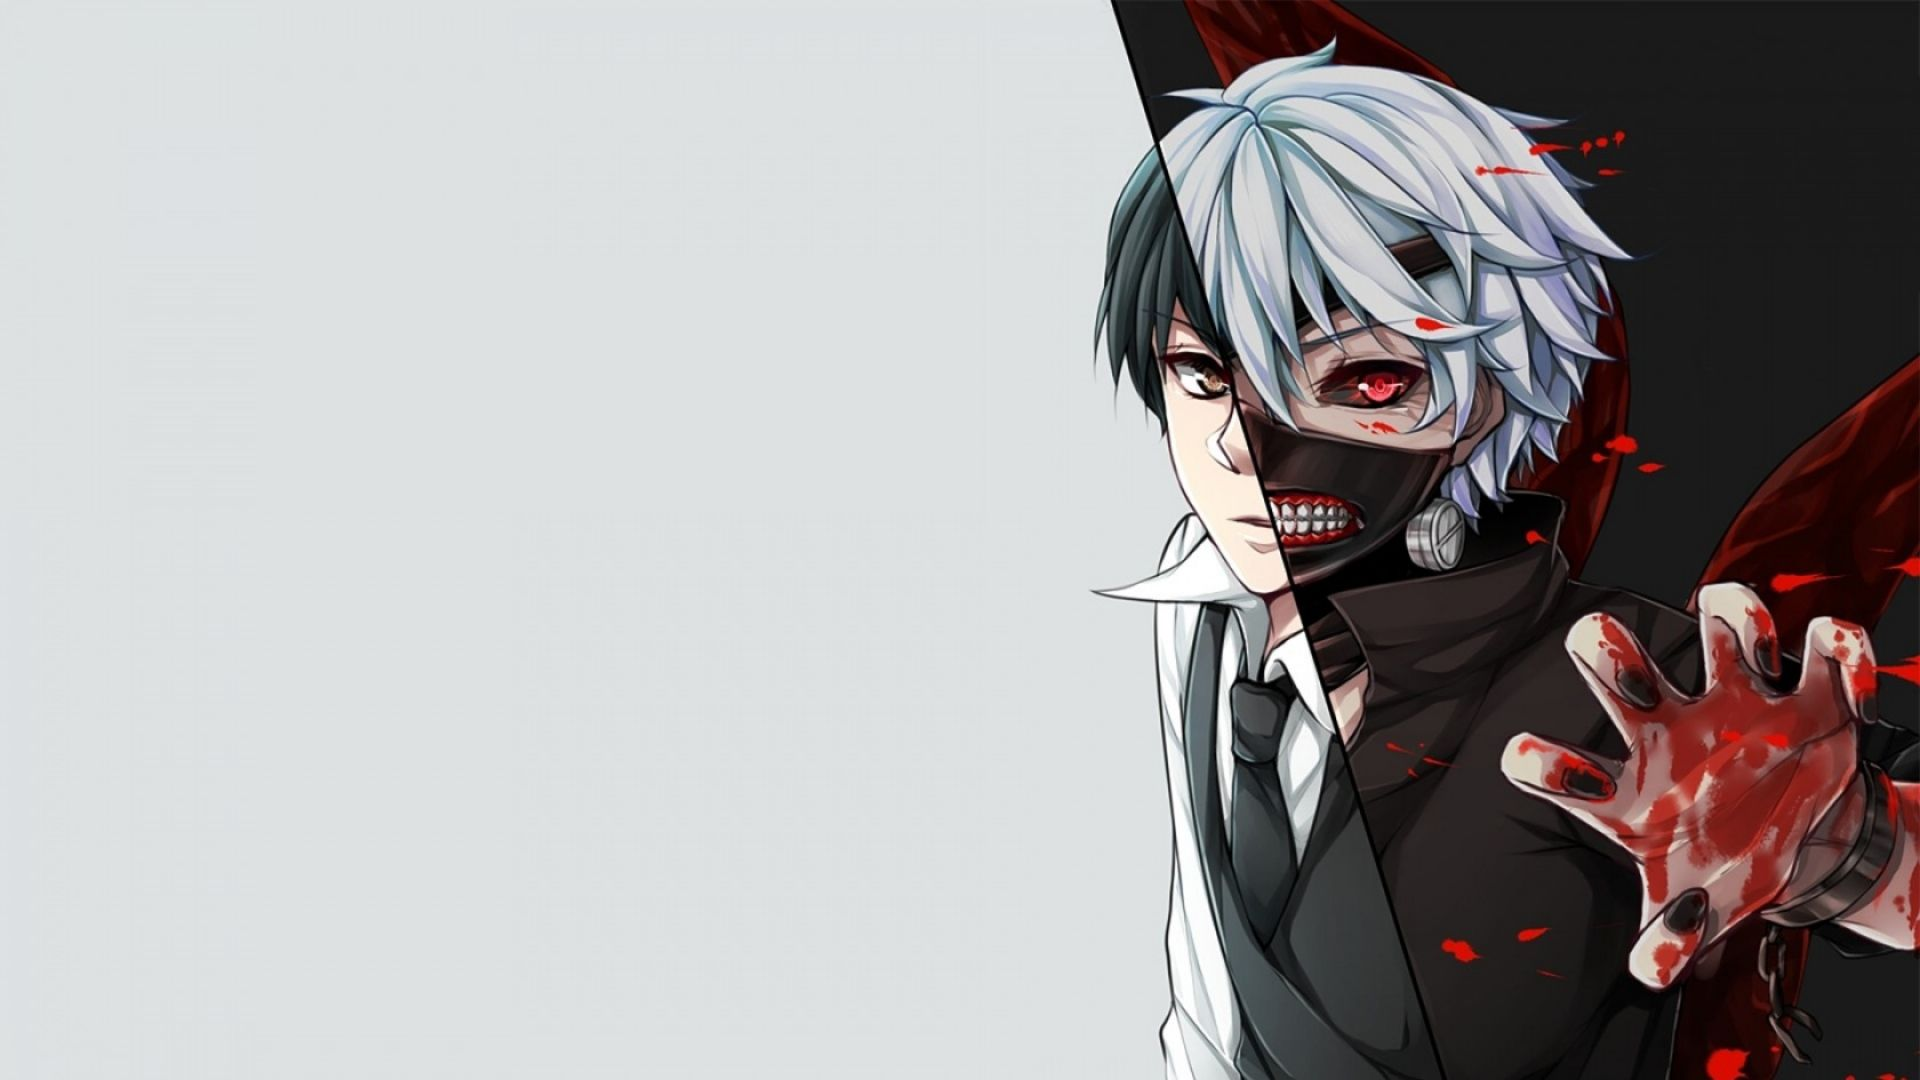 Full Hd P Tokyo Ghoul Wallpapers Hd Desktop Backgrounds